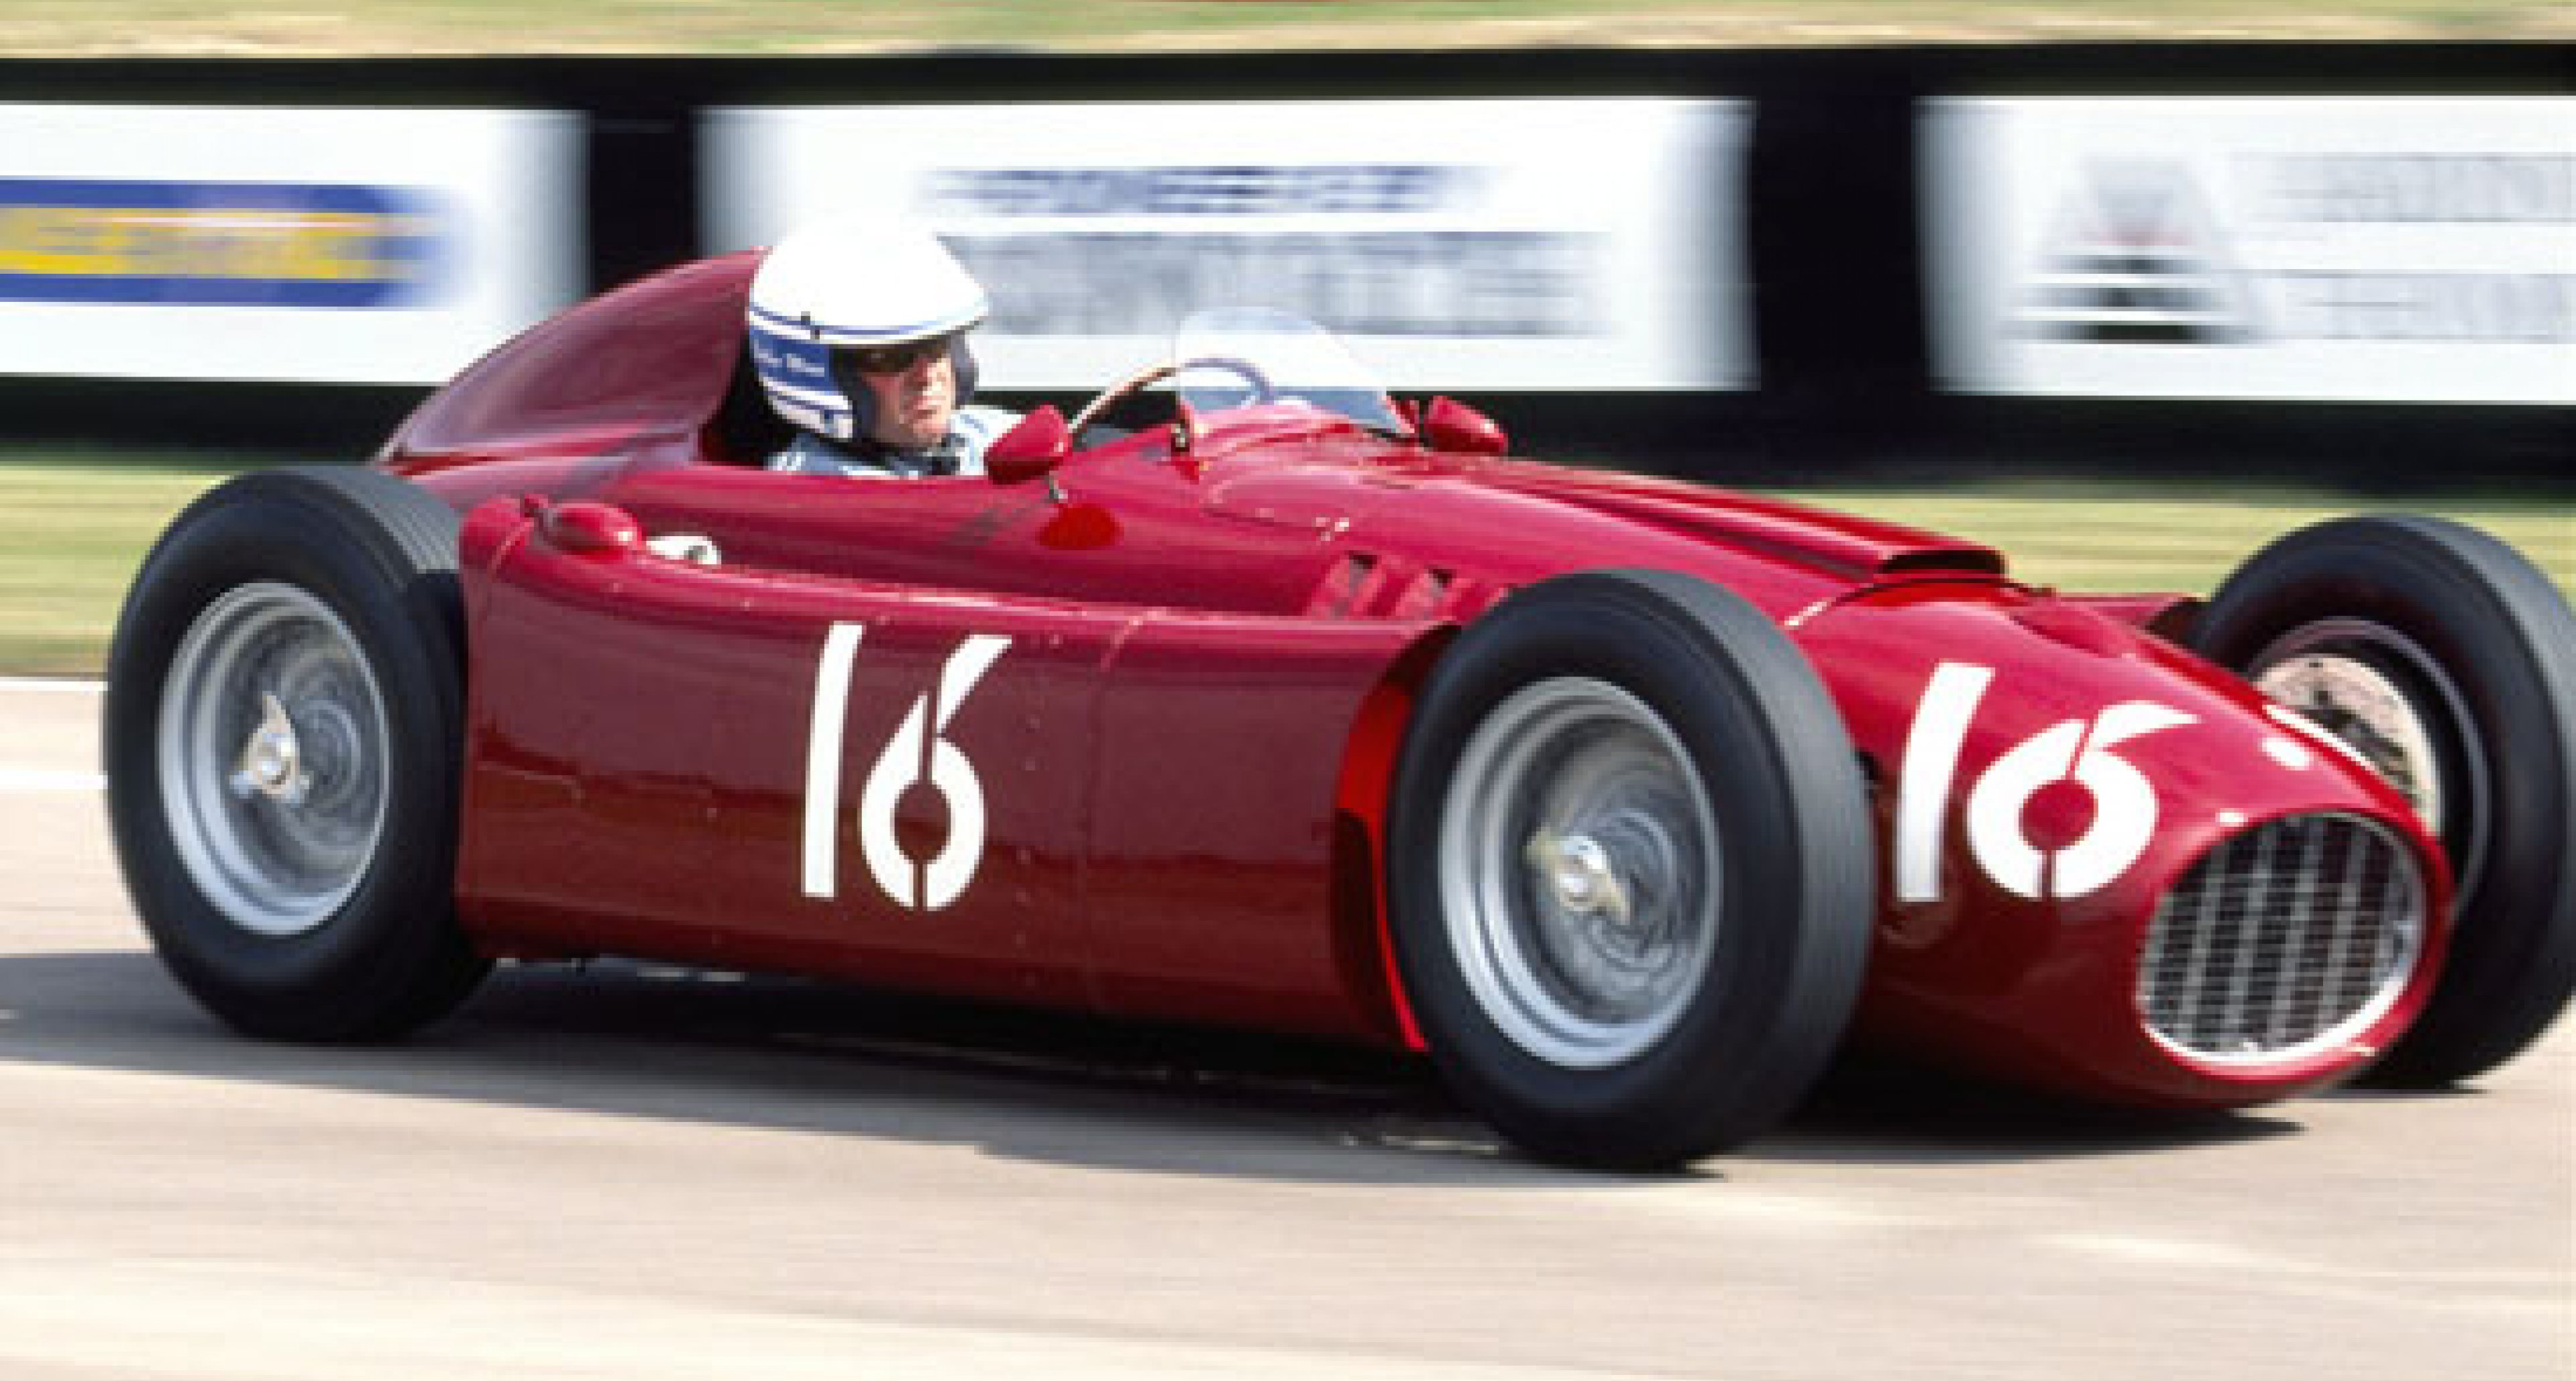 Goodwood Revival 2003 - Review